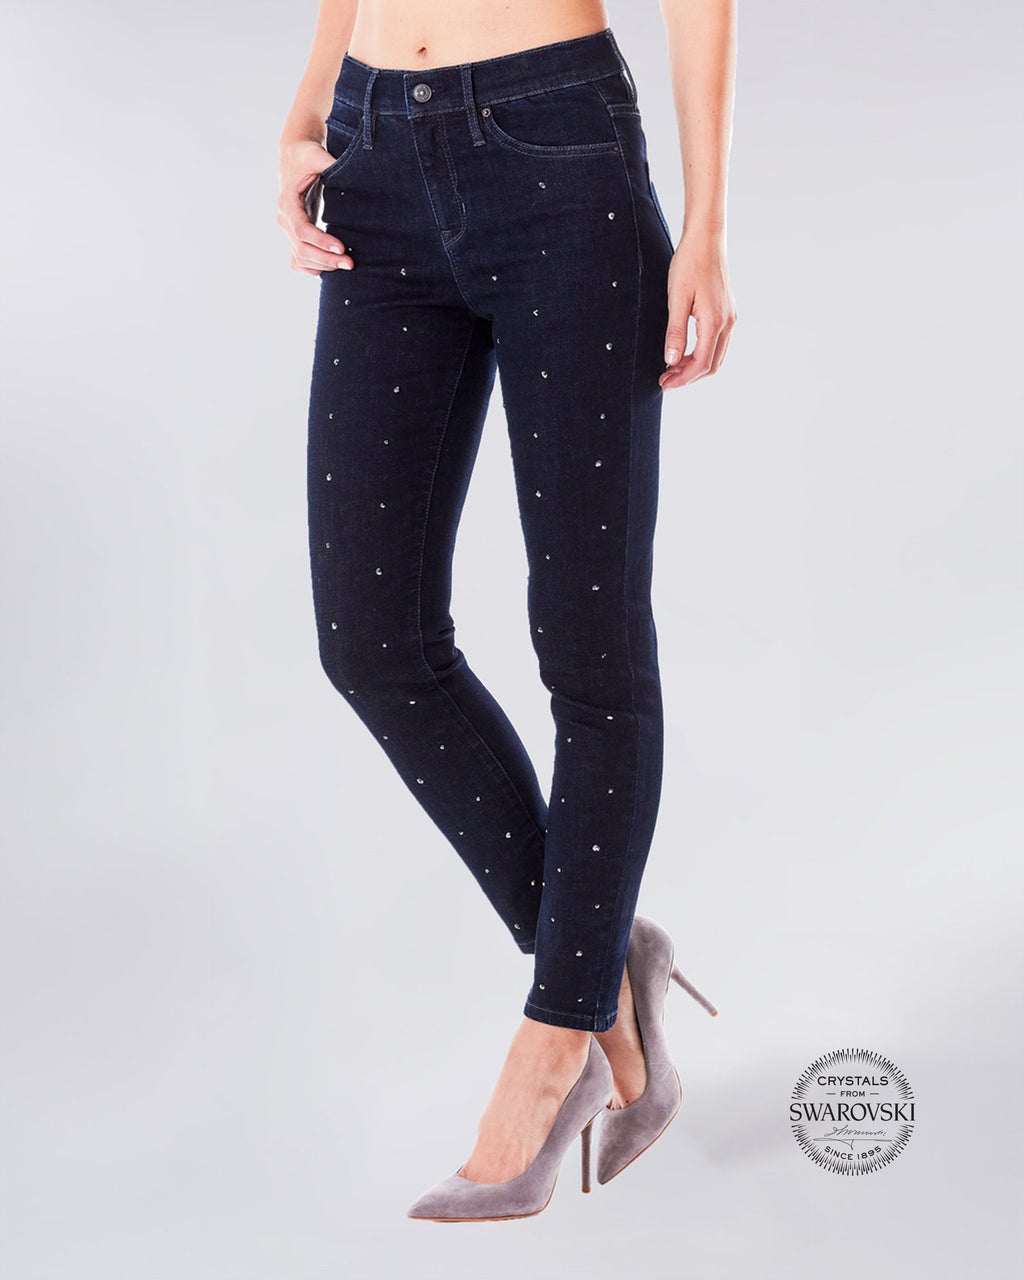 NJ0299S - SWAROVSKI CYRSTAL SOHO HIGH RISE SKINNY - bottoms - denim - An update to the classic high rise skinny jean, this Swarovski Crystal embellished pant will dress up any look. Complete with Lyrca Beauty.